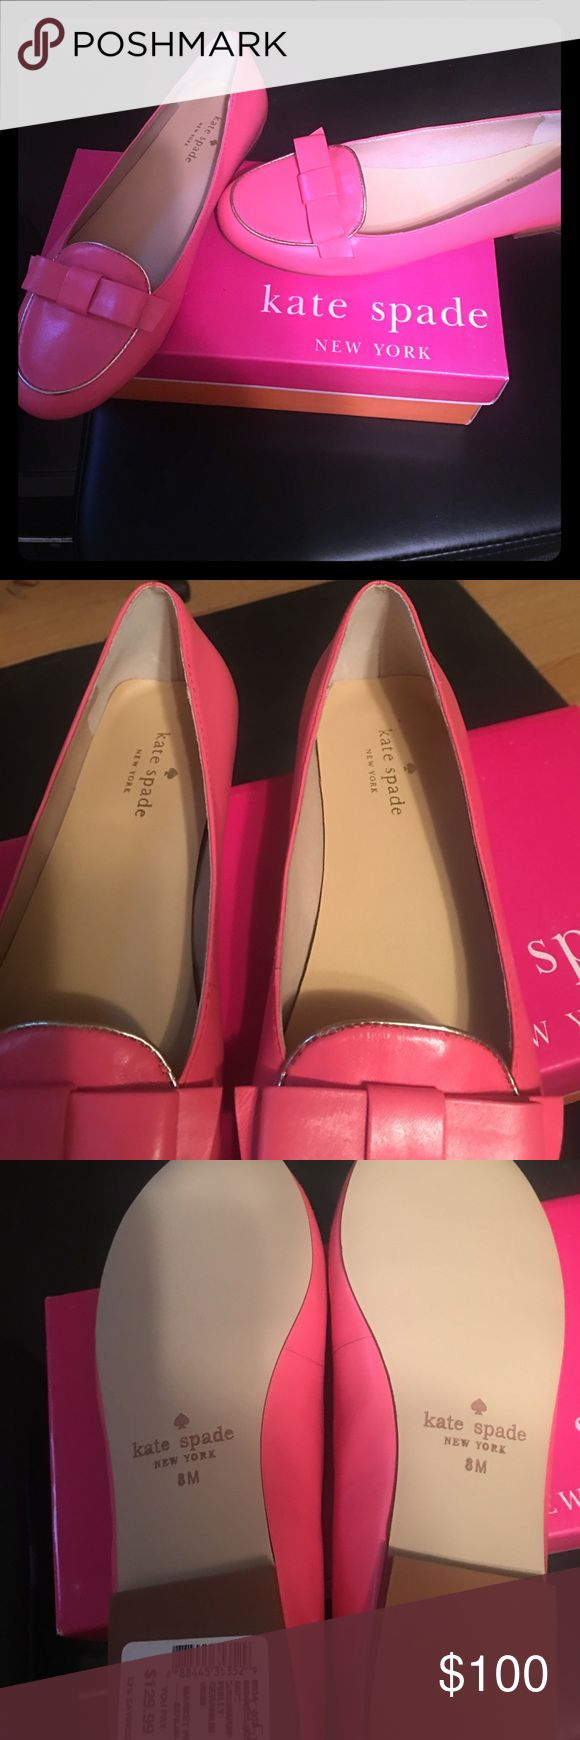 Kate spade flats Size 8 Kate spade flats. Pink with gold trim. Bows on the front. 1 /4 inch heel. Brand new in box, purchased on sale for 129.99. kate spade Shoes Flats & Loafers